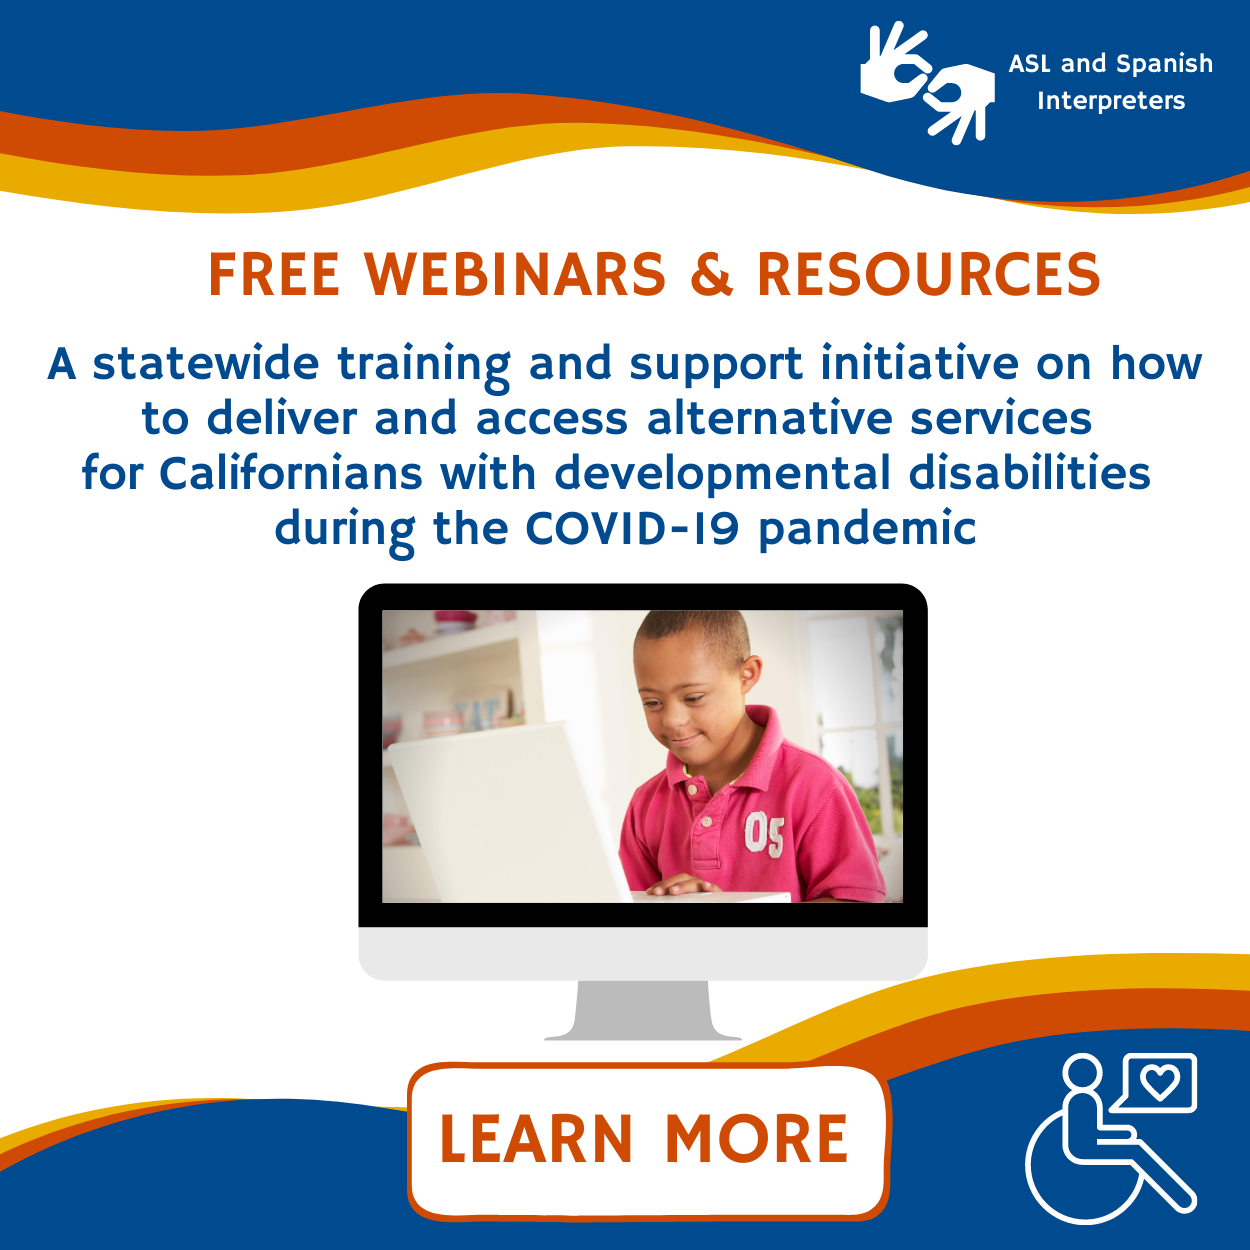 Free webinars and resources A statewide training and support initiative on how to deliver and access alternative services for Californians with developmental disabilities during the COVID-19 pandemic ASL and Spanish Interpreters Learn More.